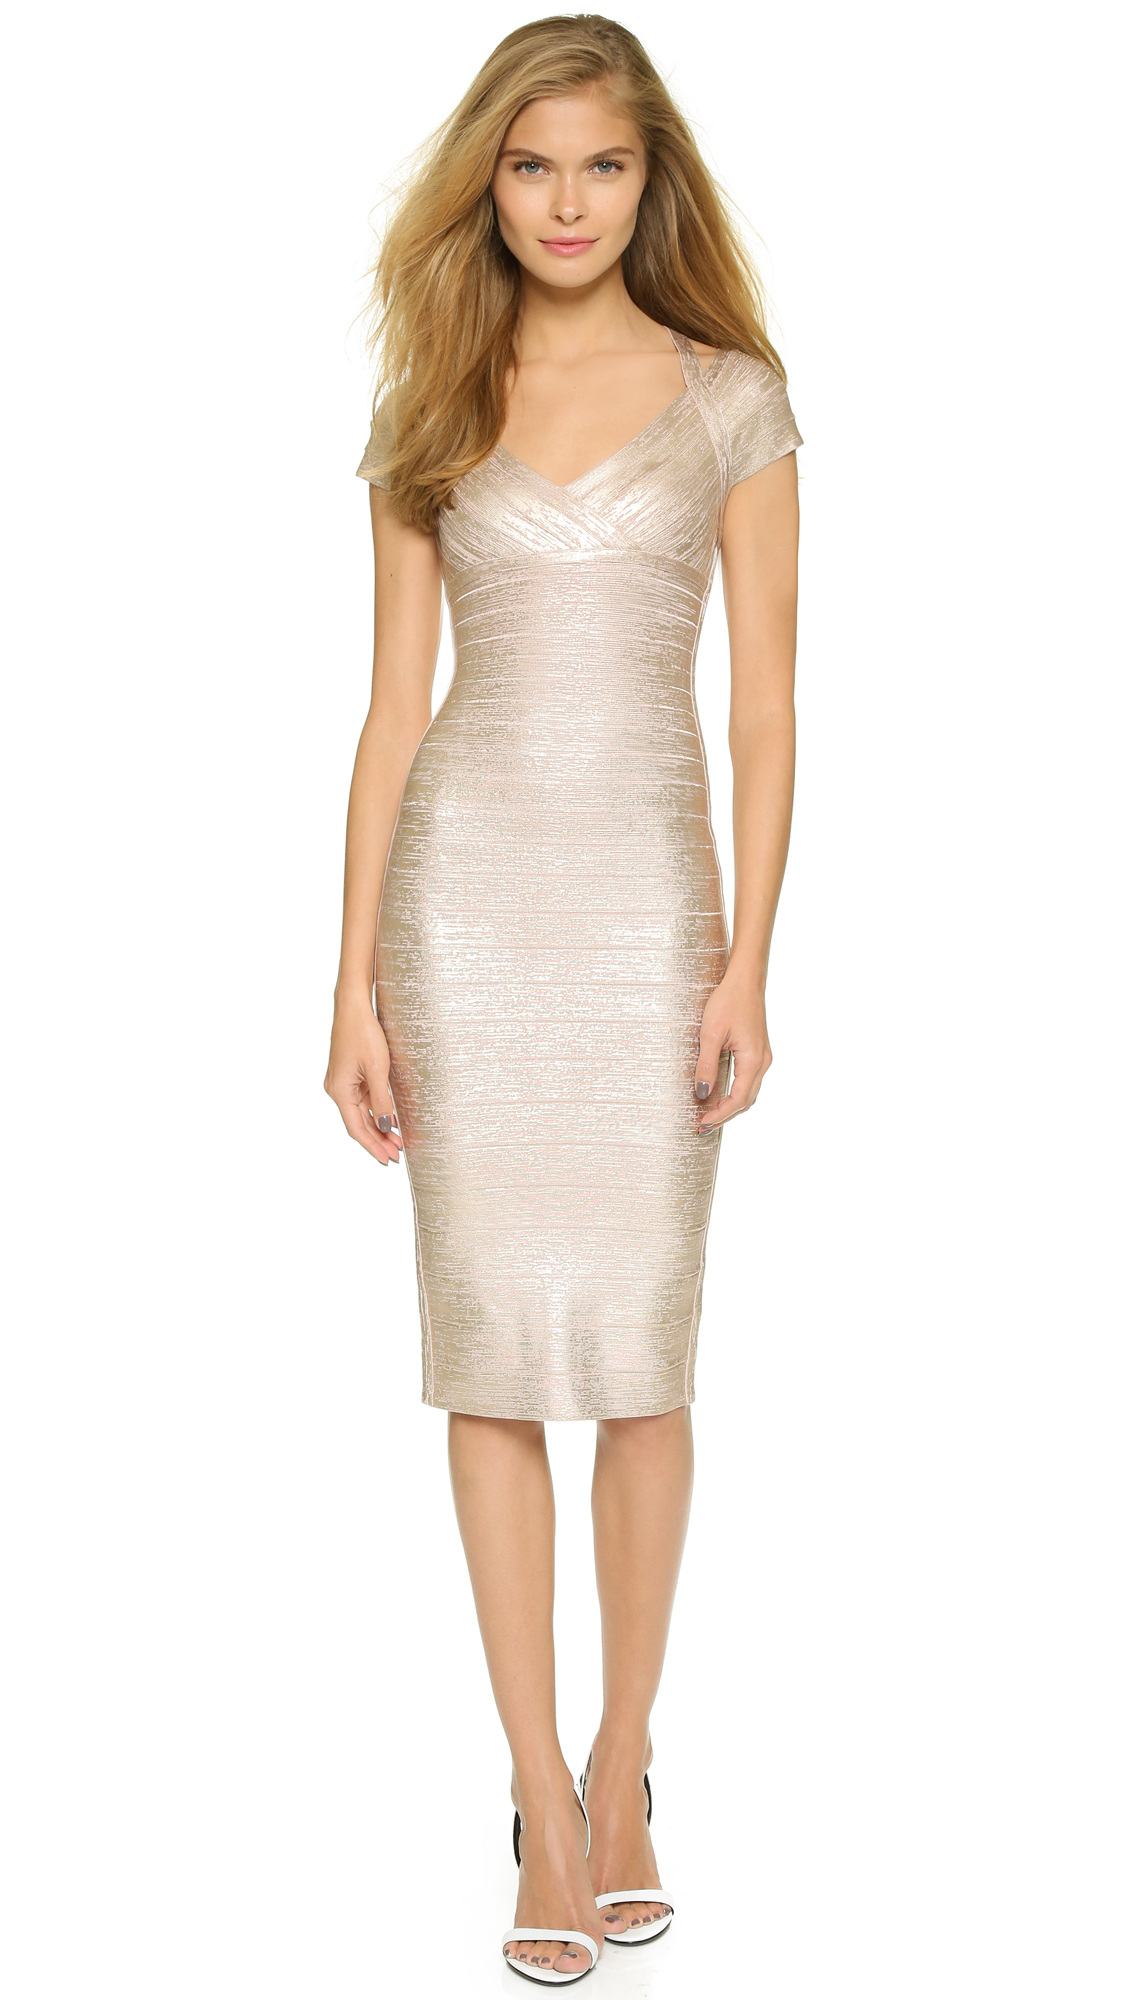 Black dress meaning -  Herve Leger Black Dress With Fancy Bodice Meaning Of Colors